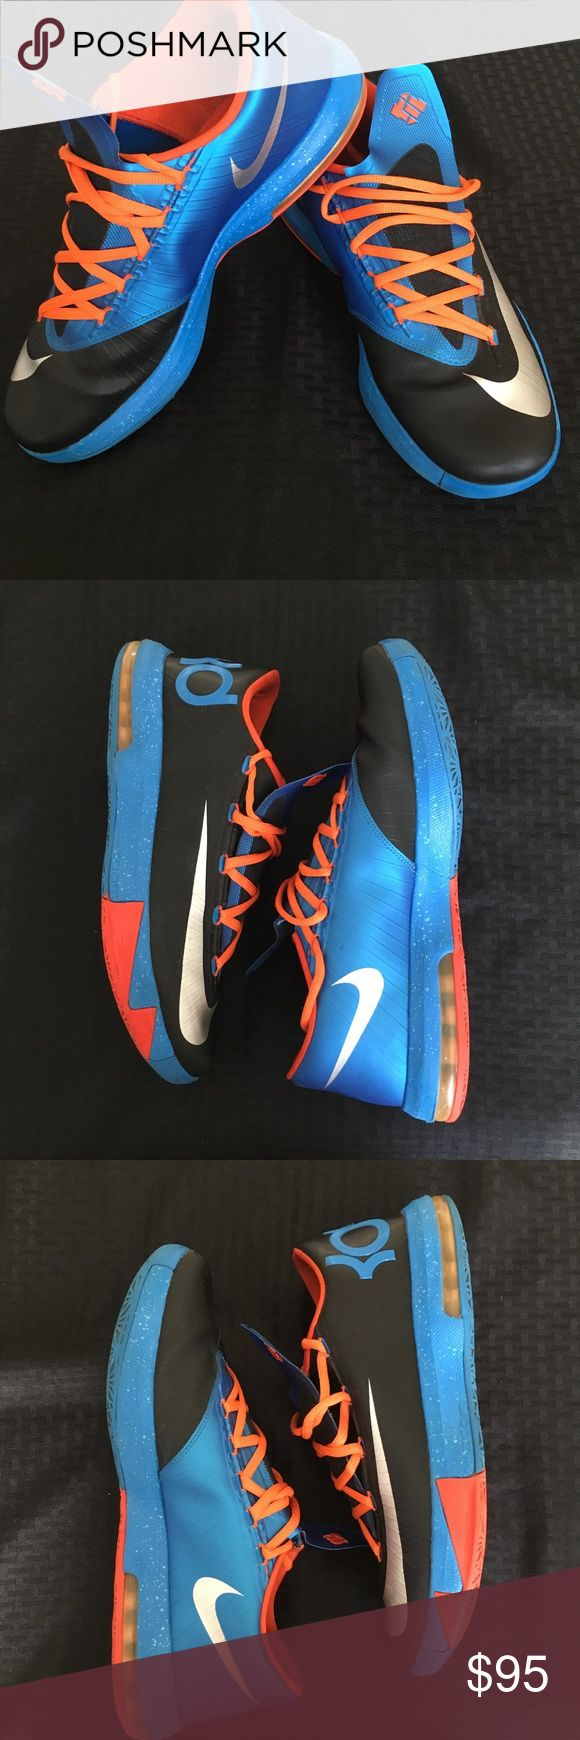 🏀 Nike KD VI Sneakers 🏀 Great pair of kicks to wear for fashion or play basketball in. Great condition, back sole scuffed(see pic), slight creasing and slight wear on bottom of sole (see pic). The shoes laces were changed and are slightly longer then originals. No Box!Reasonable offers accepted, thanks for looking☺️ Nike Shoes Sneakers